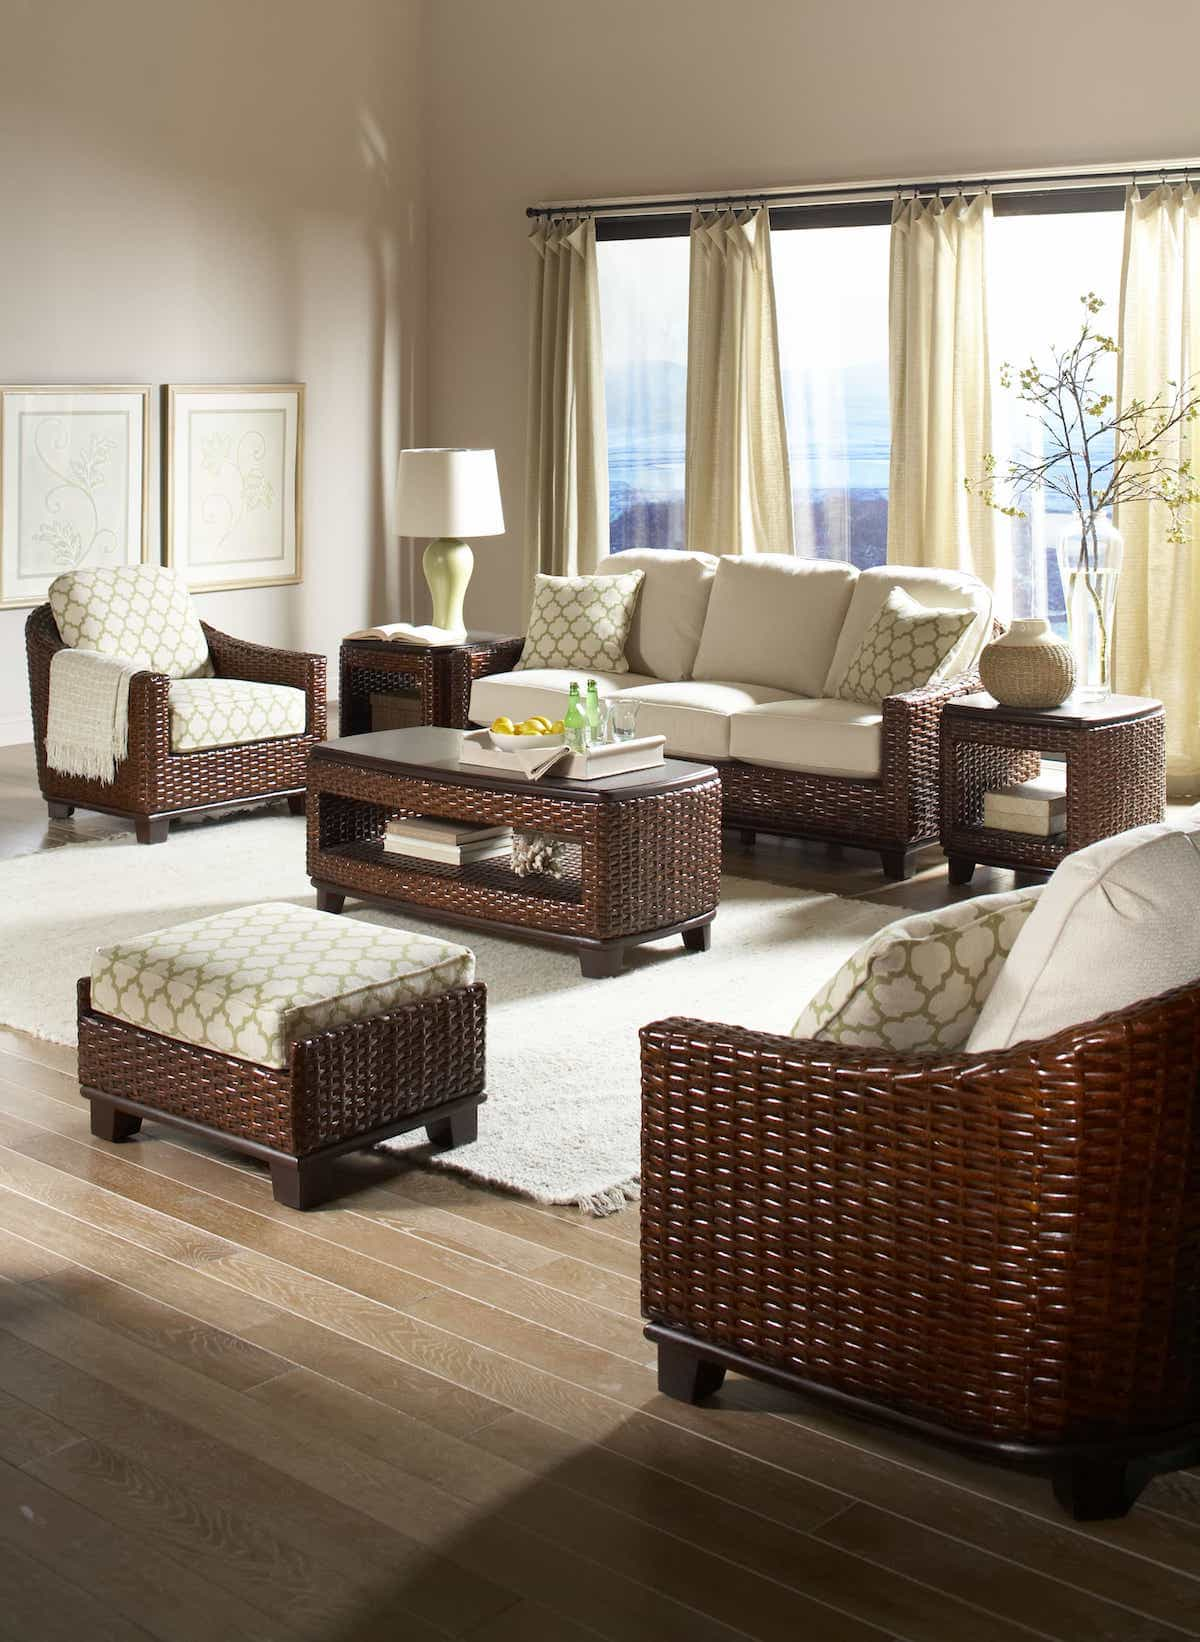 Classic Living Room Furniture Set With Rattan Table And Chairs With Sisal Rug Flooring (Image 5 of 15)